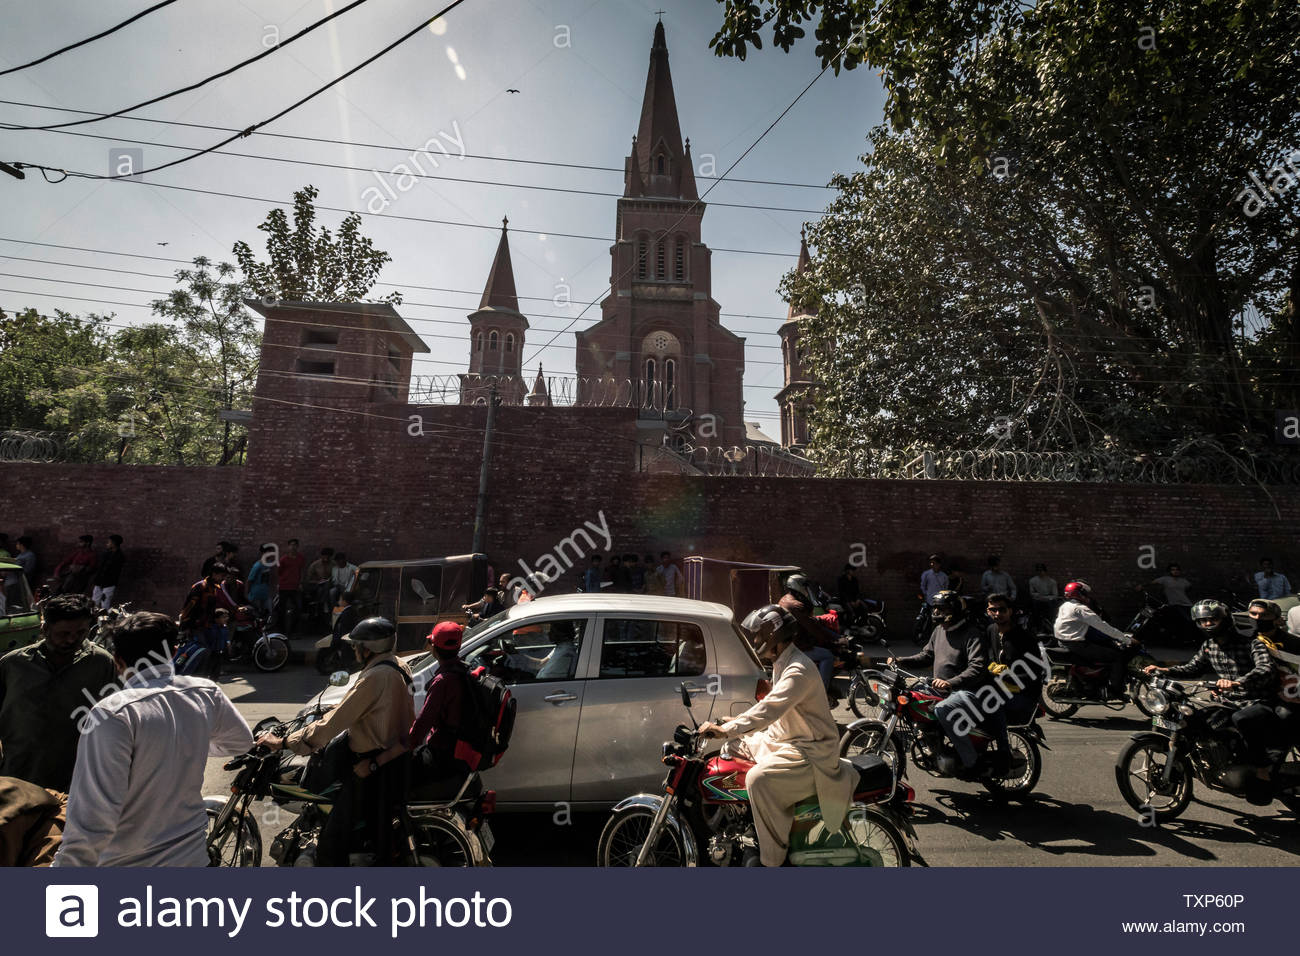 Daily traffic chaos before Sacred Heart Cathedral in Lahore in Pakistan. - Stock Image